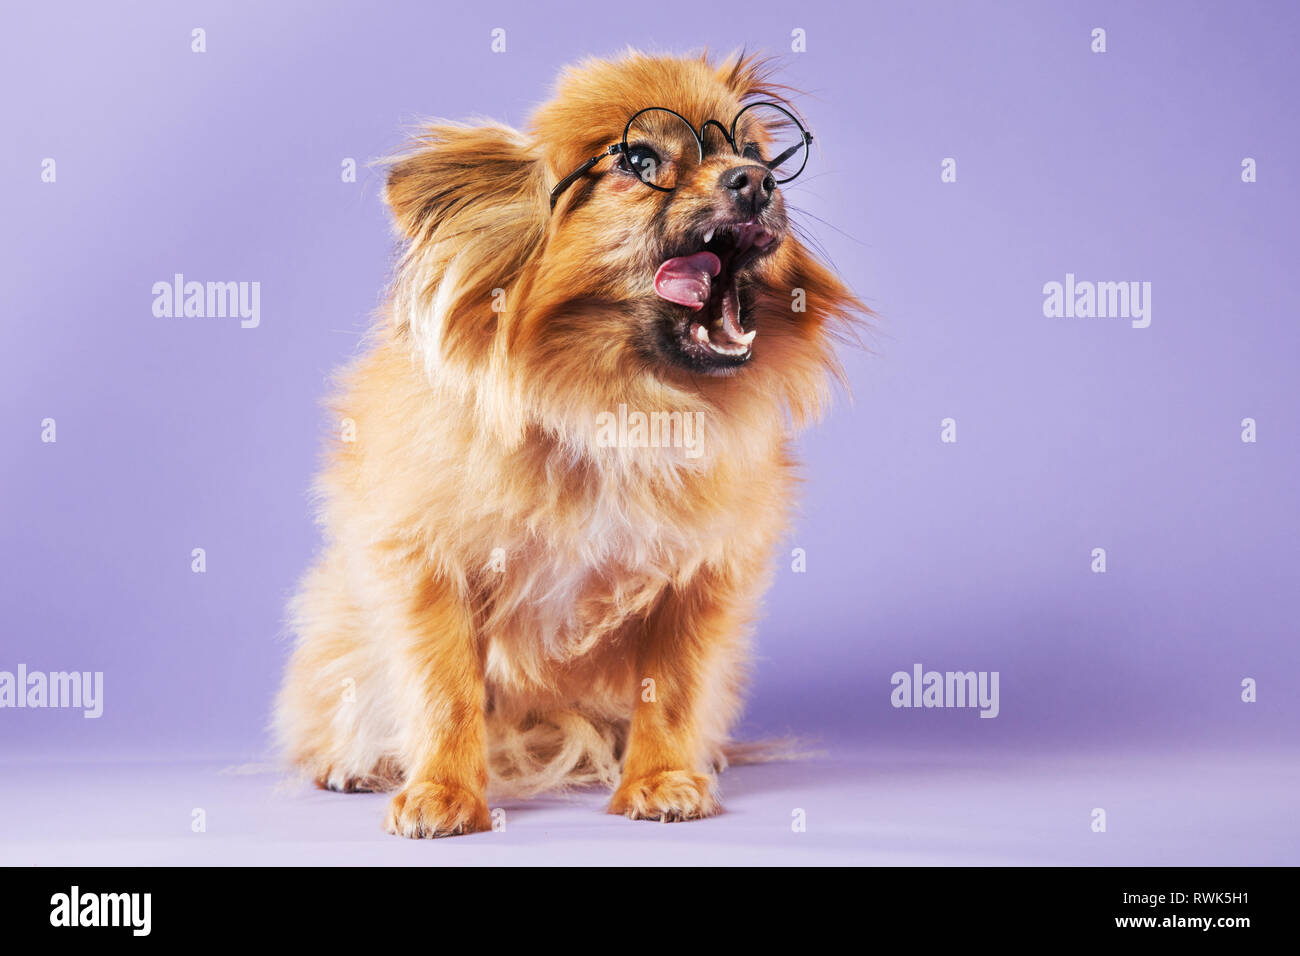 Full-body studio portrait of a Pomeranian dog wearing eyeglasses and licking its chops on a colorful background. - Stock Image